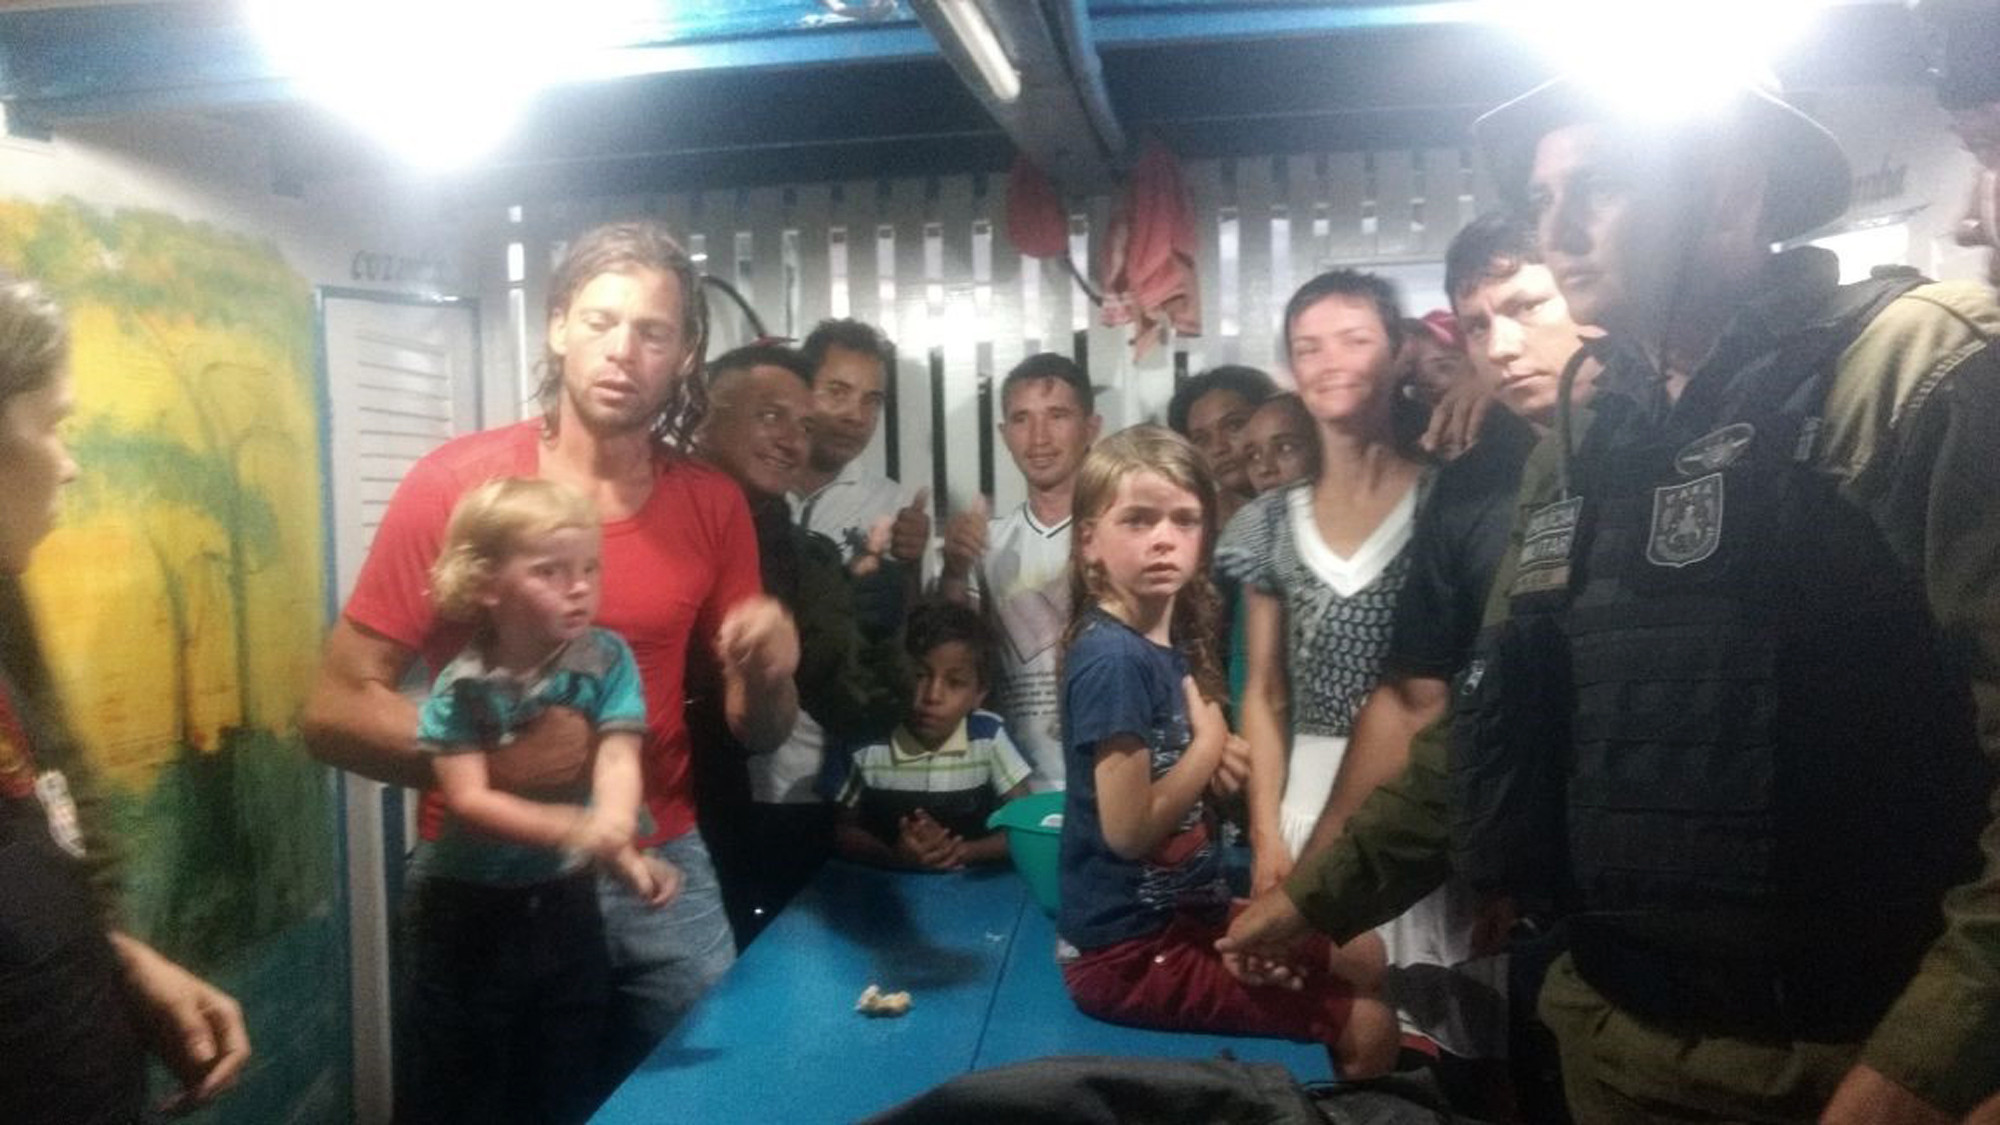 This Nov. 1 photo provided by Brazilian officials shows Adam Harteau, left, Emily Harteau, third from right, and their two daughters with police and Brazilian villagers after the family's rescue.